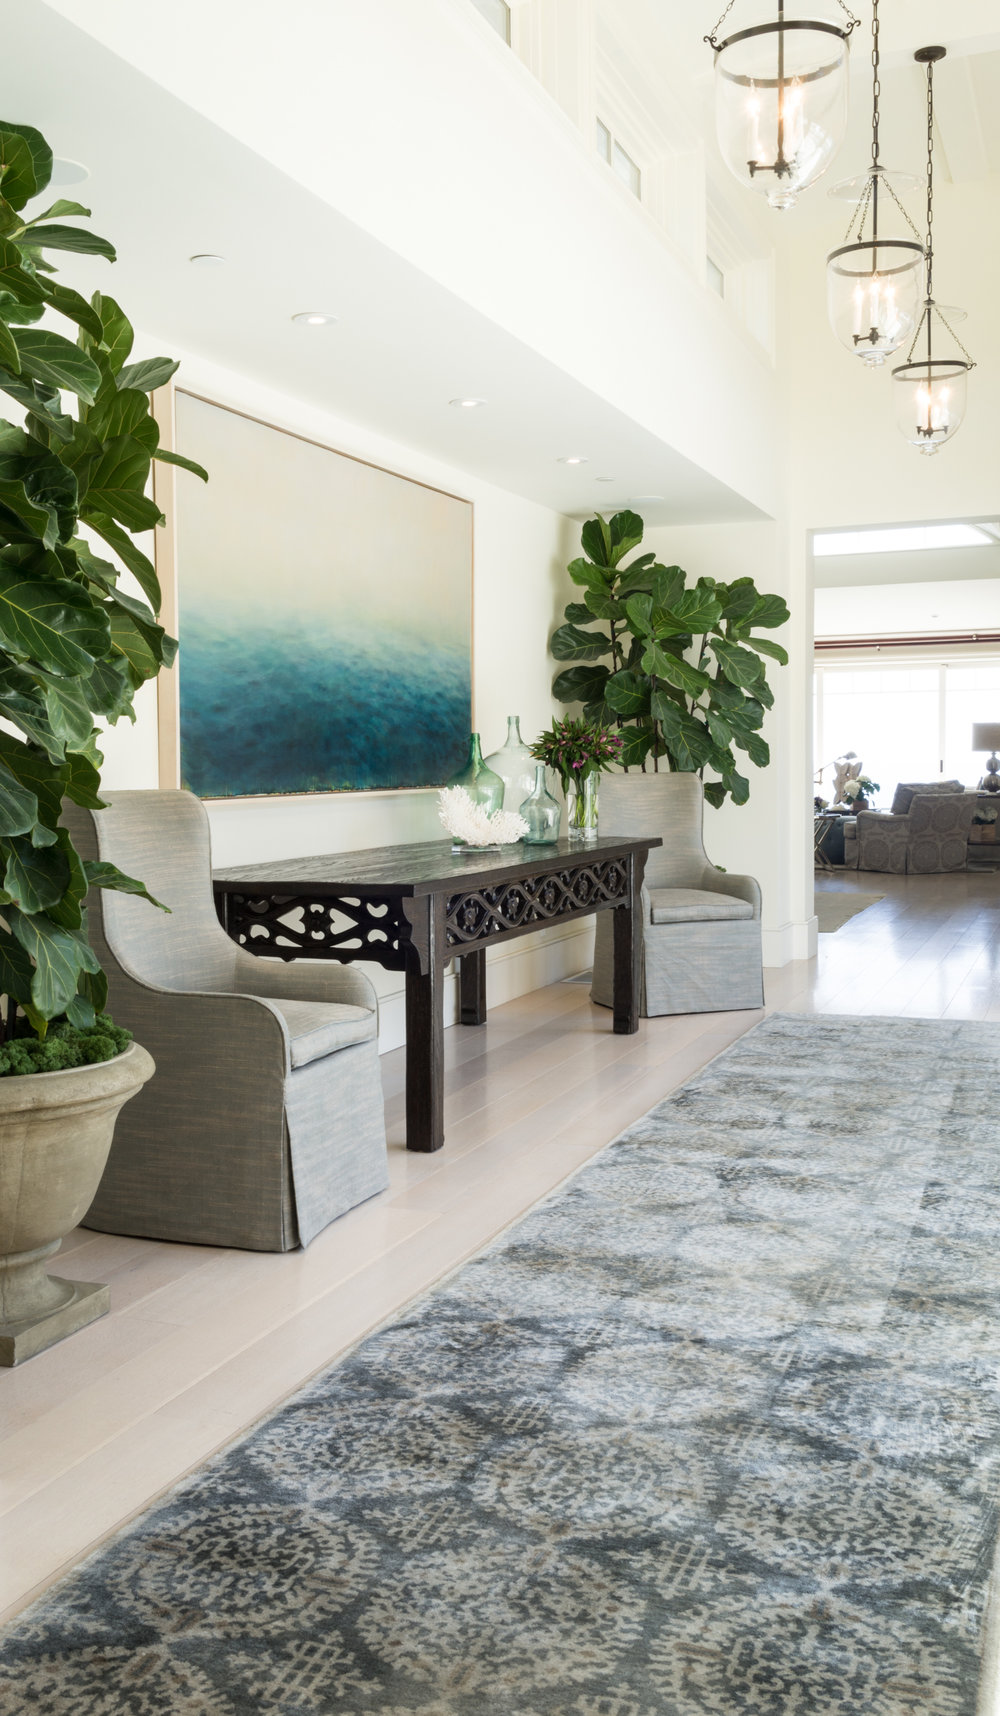 Our design firm, located in the heart of beautiful Laguna Beach, specializes in high-end residential interior design. - From quick fixes to uplift and update a room, to historical remodels, we work with each client individually, creating homes that are layered with unique pieces and custom furniture to incorporate elegance ease & comfort for each client.